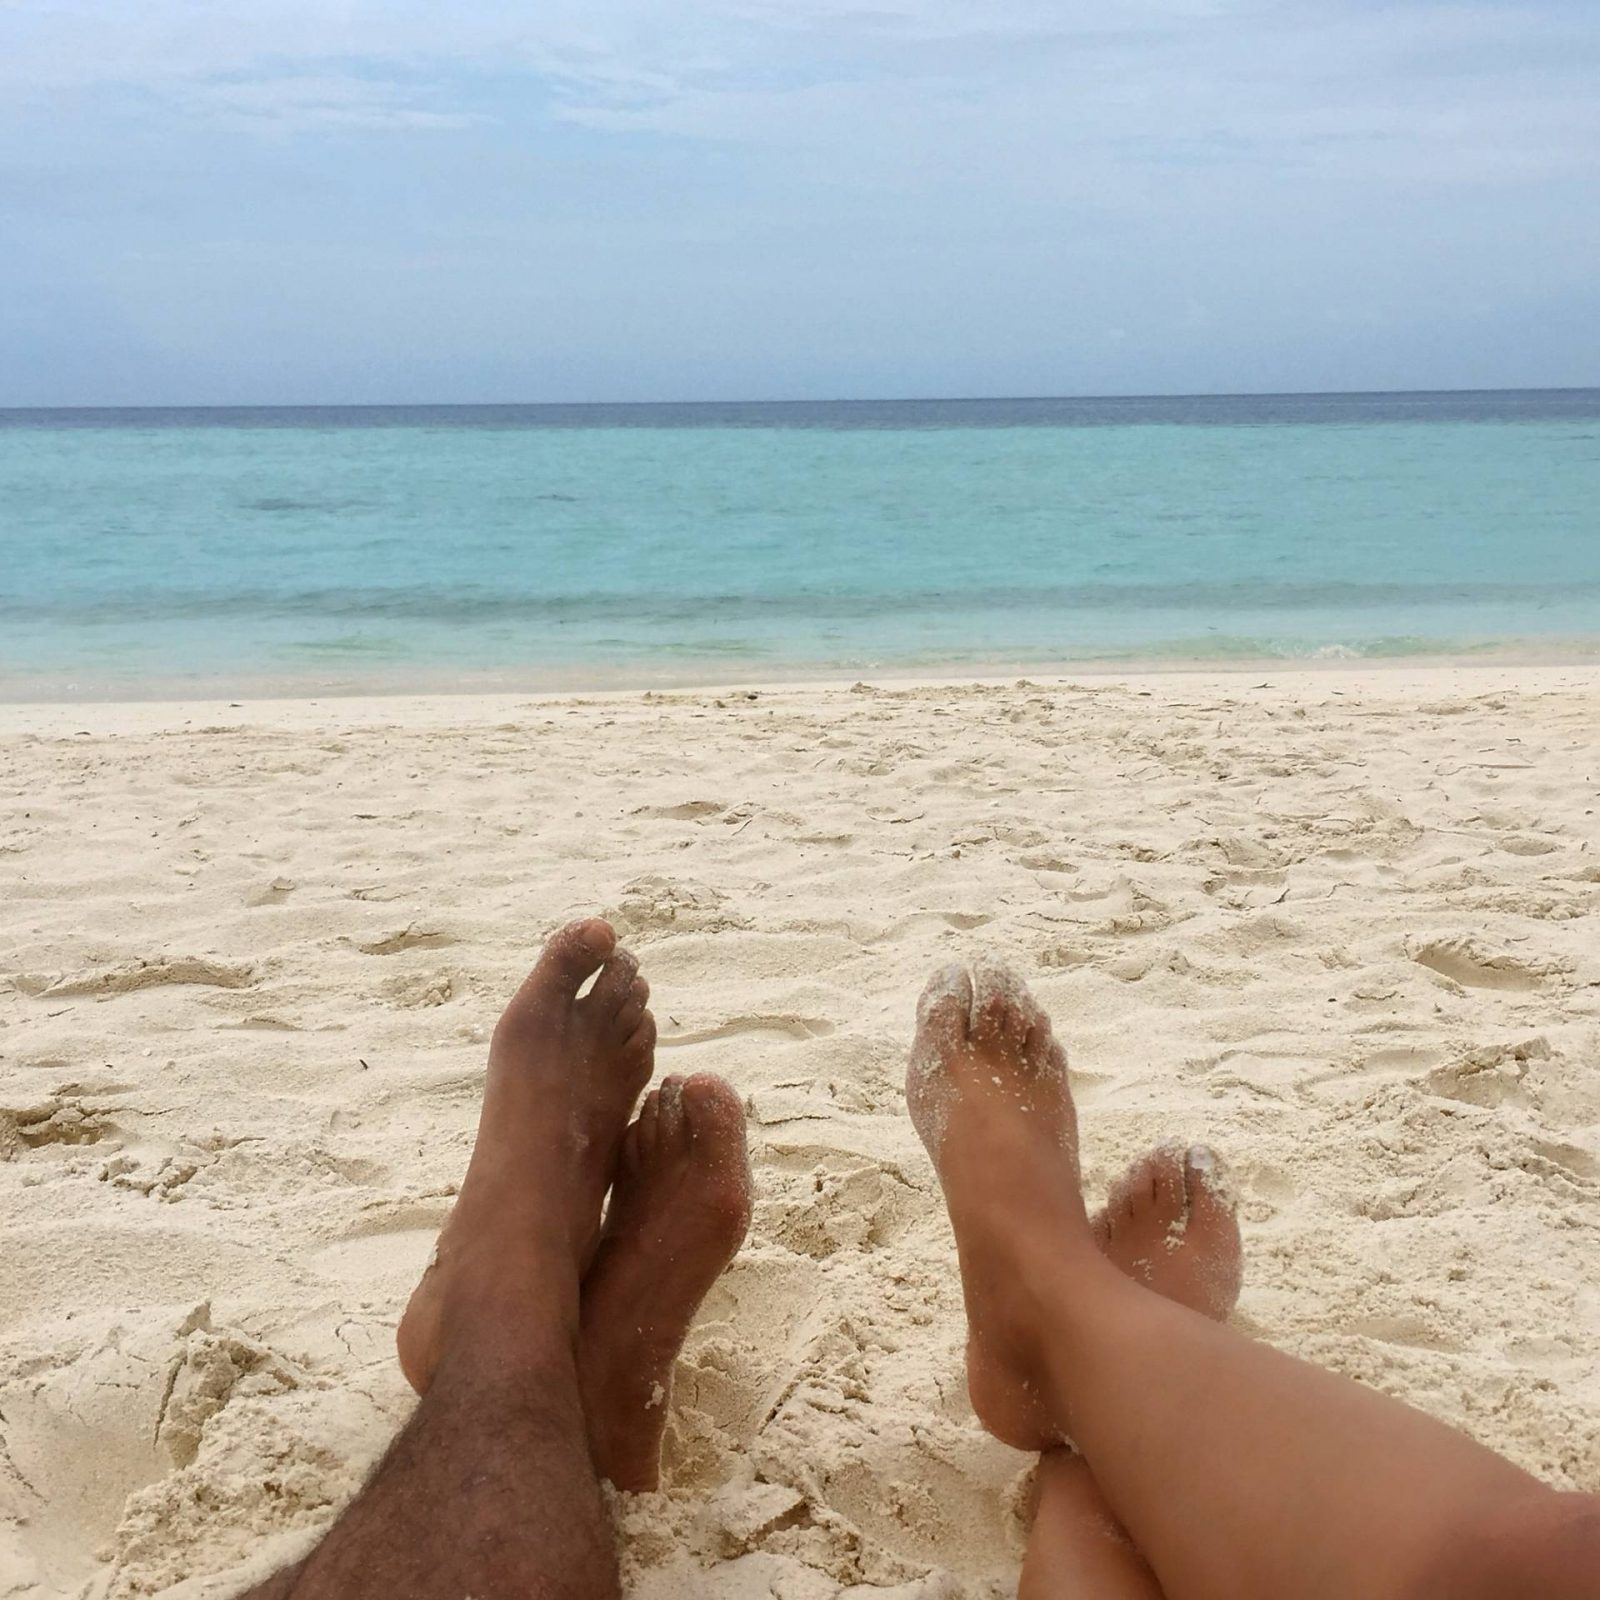 Comment voyager pas cher ? / How to travel on a tight budget ?